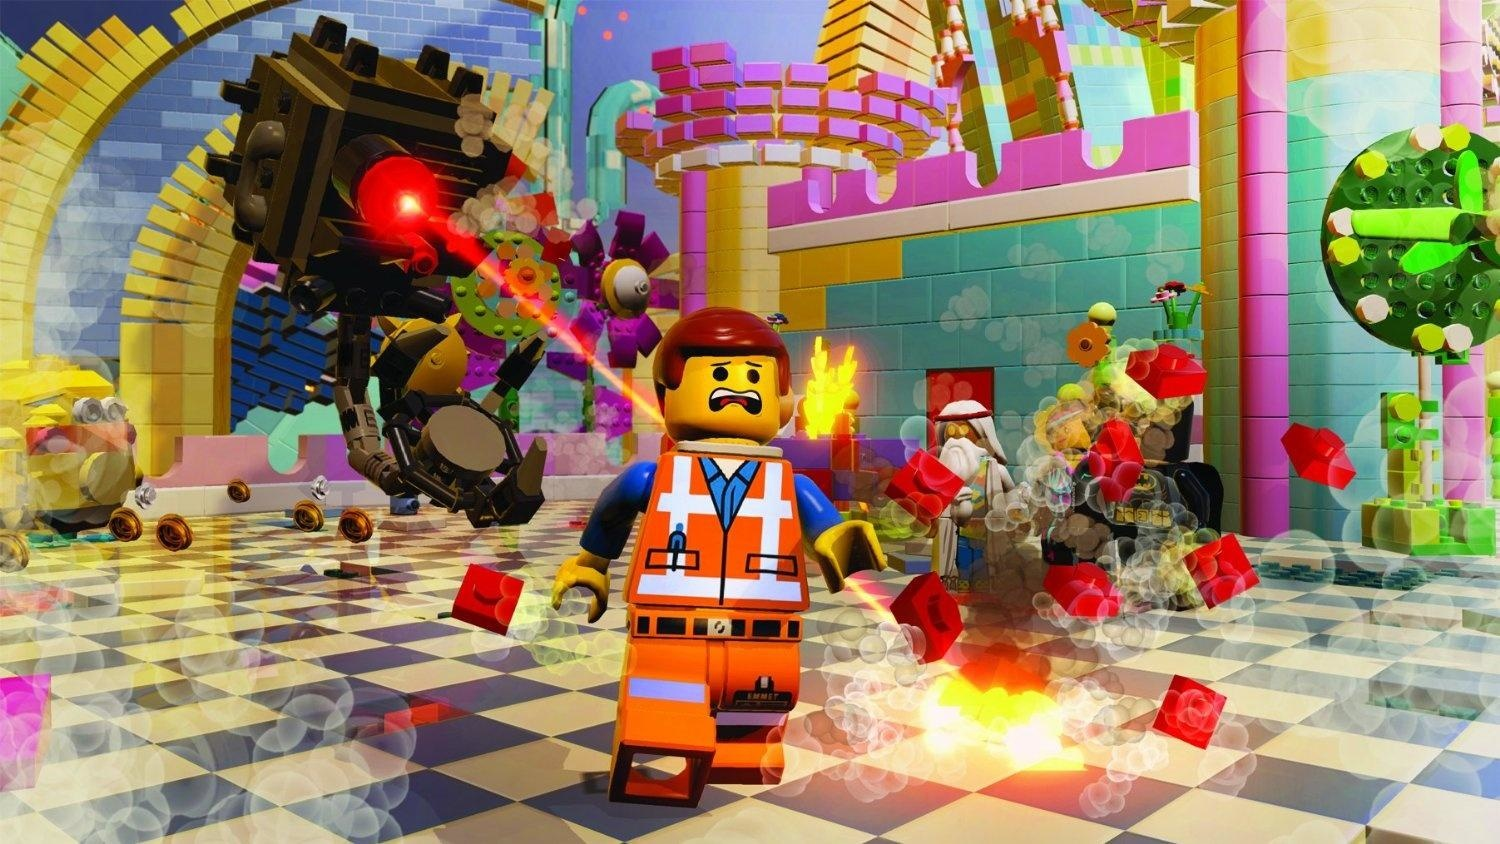 The LEGO Movie Videogame im Test - Das 08/15-Legospiel